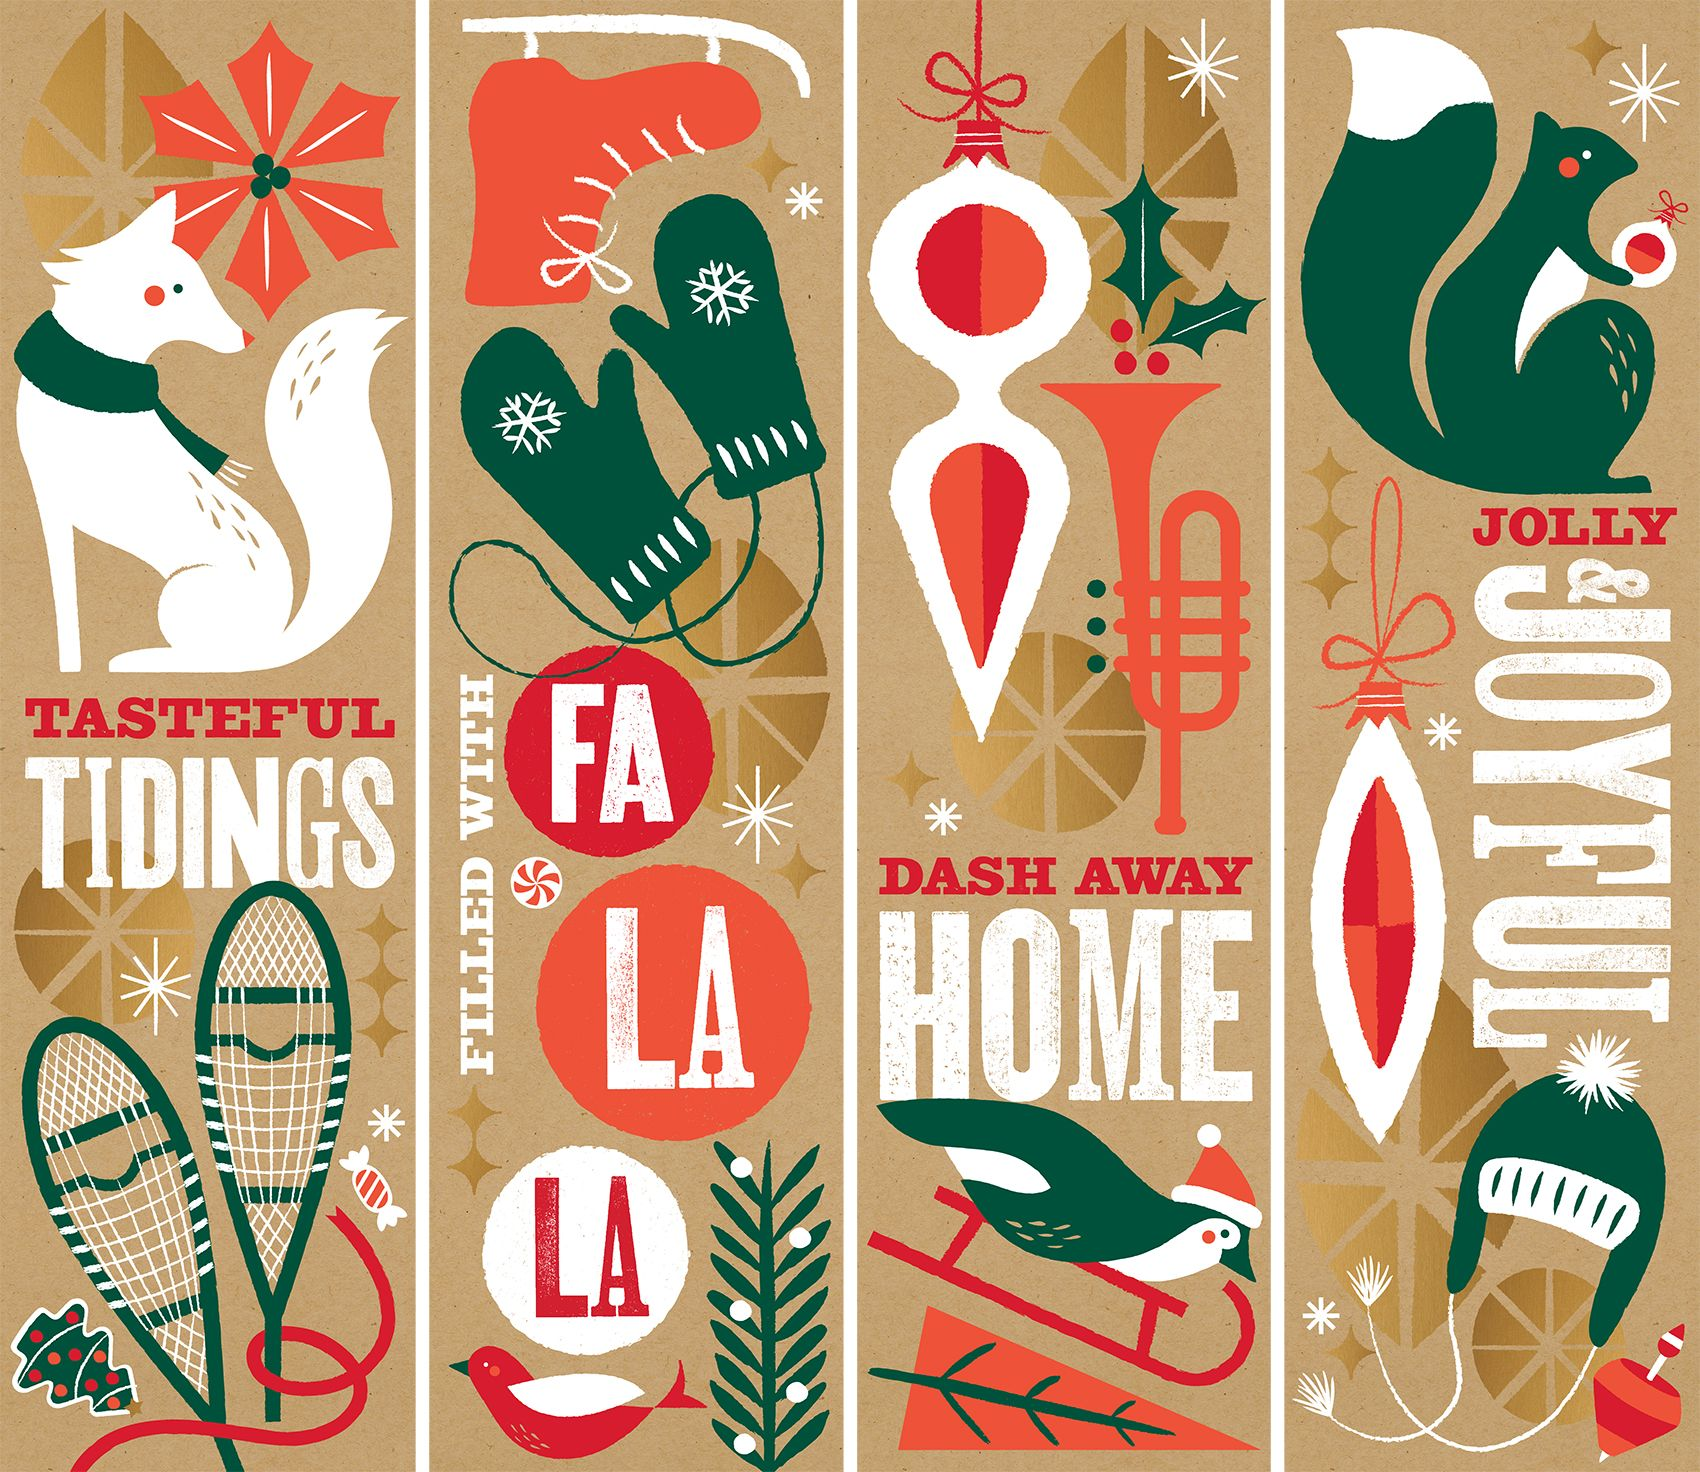 Panera 2013 Holiday By Willoughby Design Christmas Graphic Design Holiday Illustrations Christmas Graphics